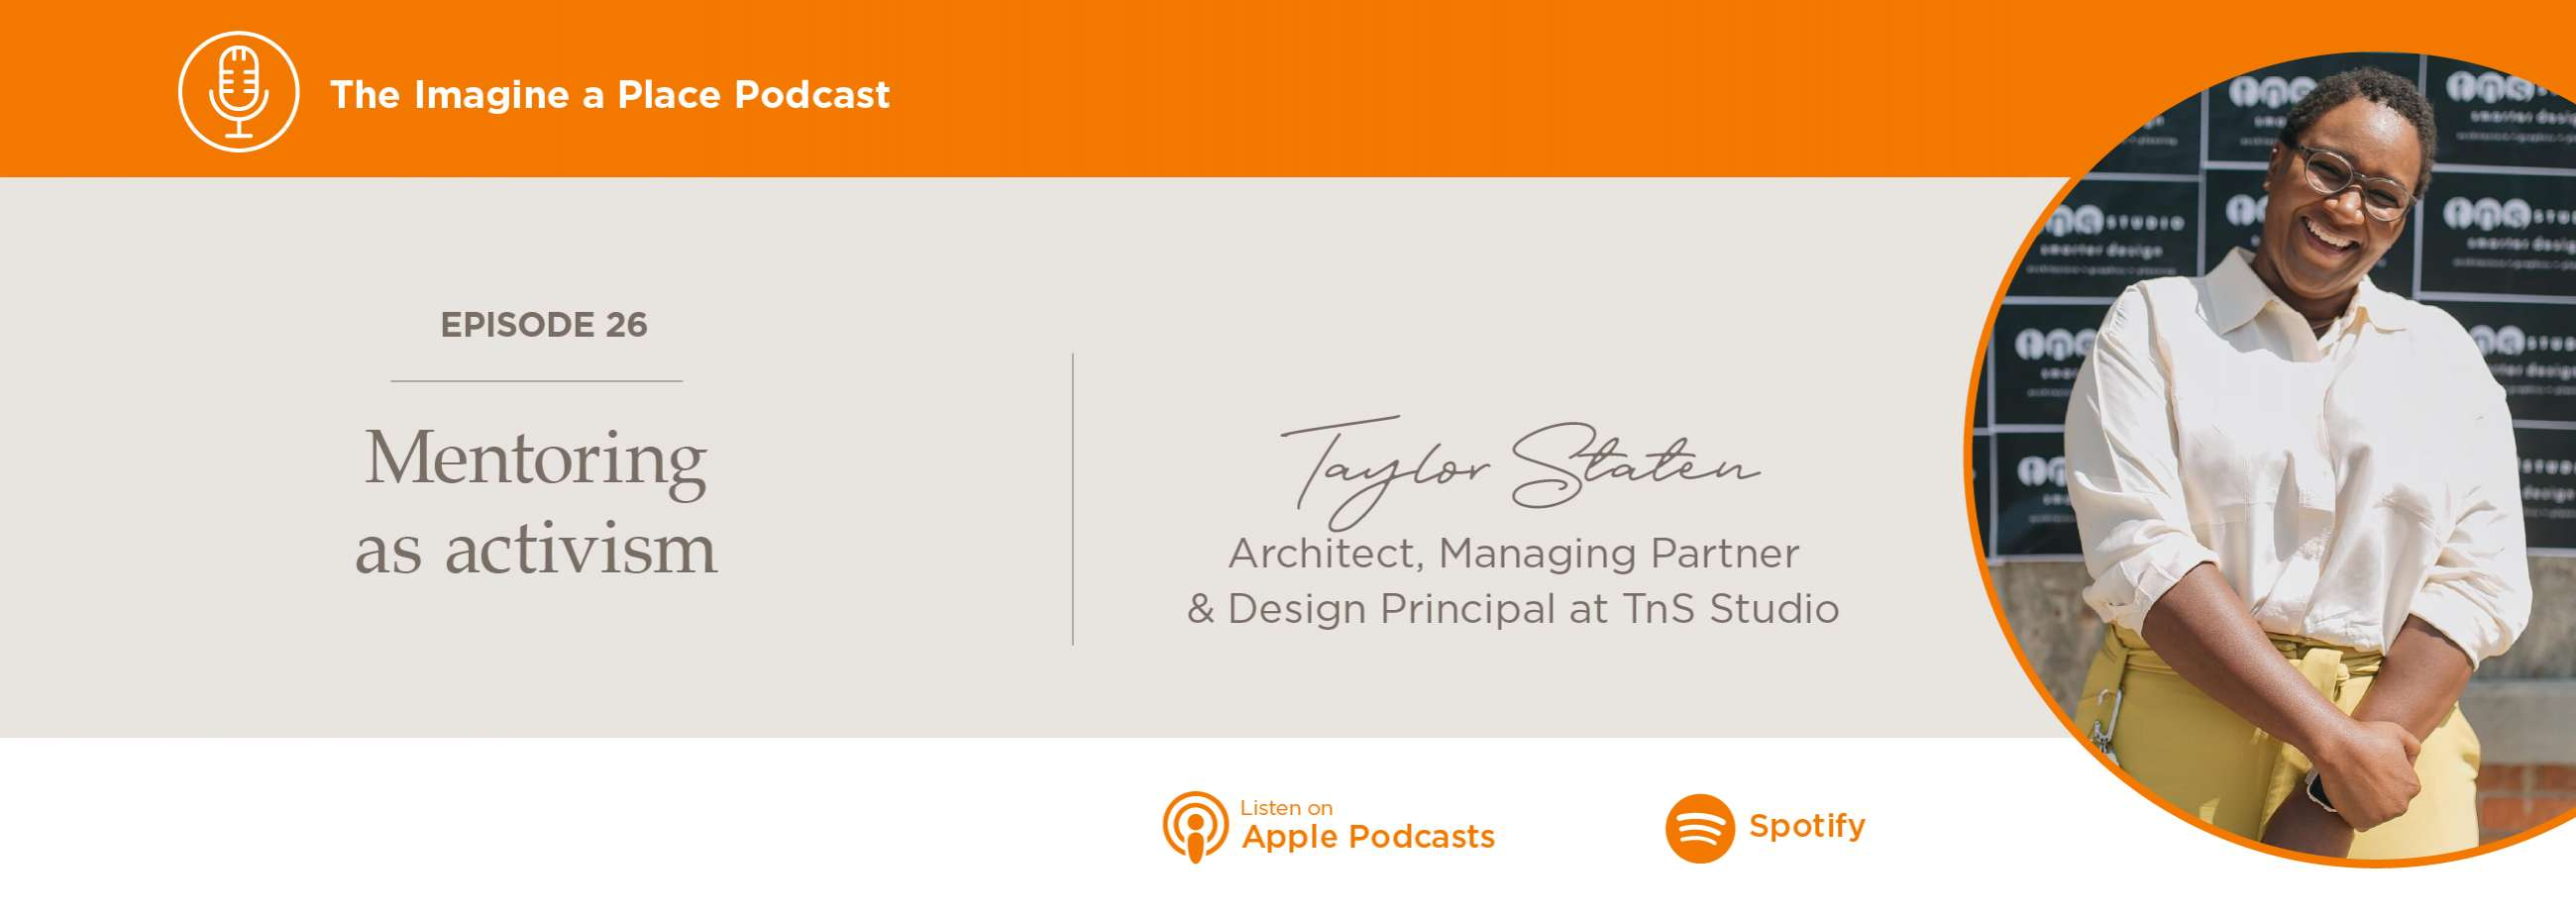 Imagine a Place Podcast with Taylor Staten of TnS Studios